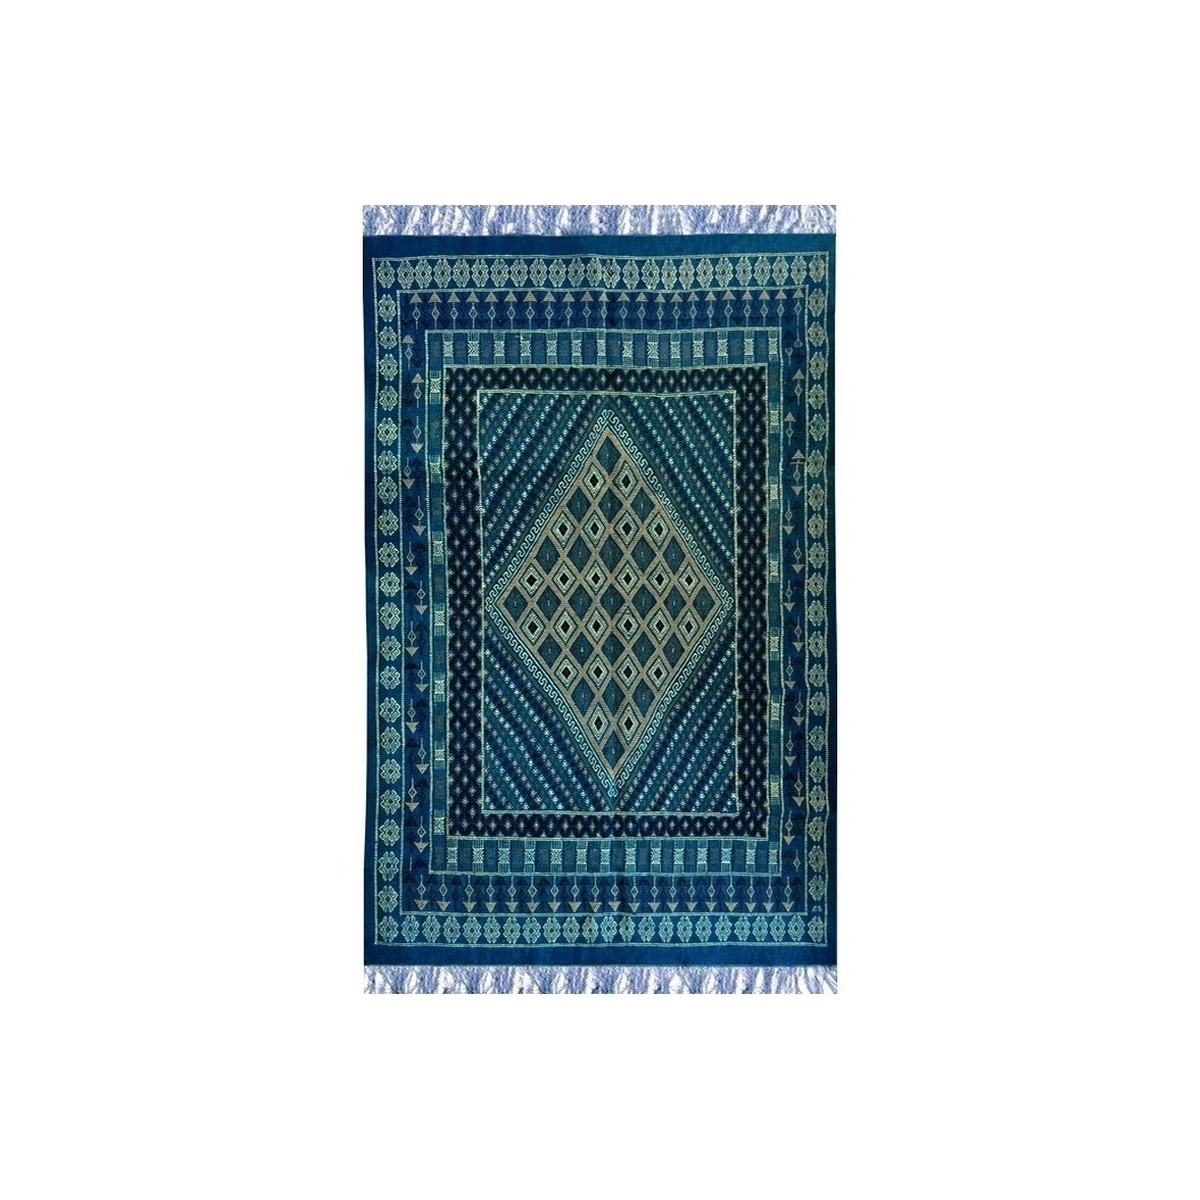 Berber carpet Large Rug Margoum Memi 155x260 Blue (Handmade, Wool, Tunisia) Tunisian margoum rug from the city of Kairouan. Rect